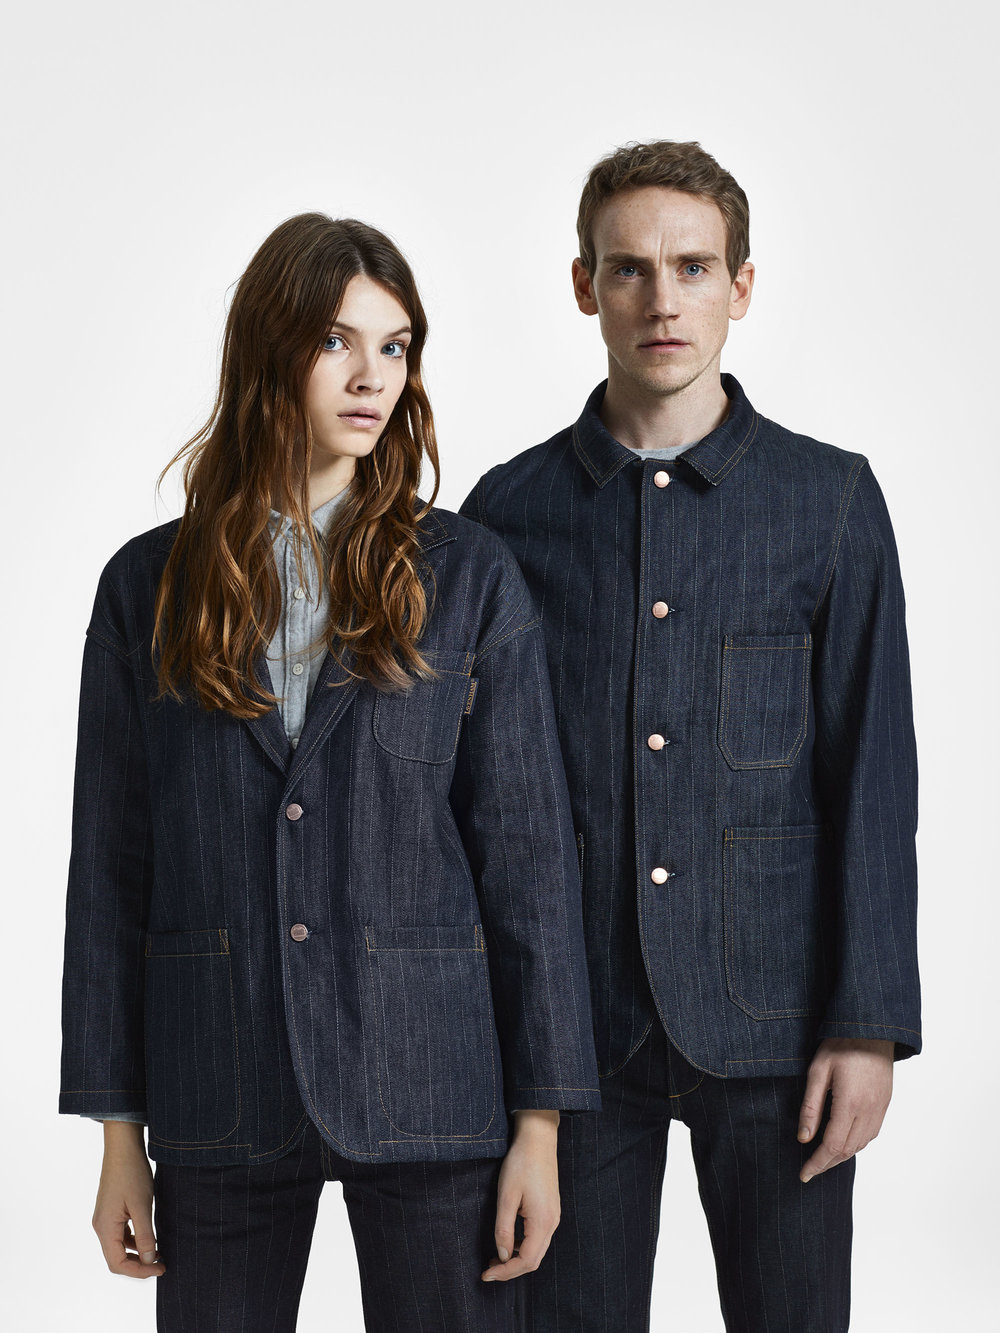 2016_12_08_AW17_LAVENHAM_DENIM_COUPLE_070.jpg